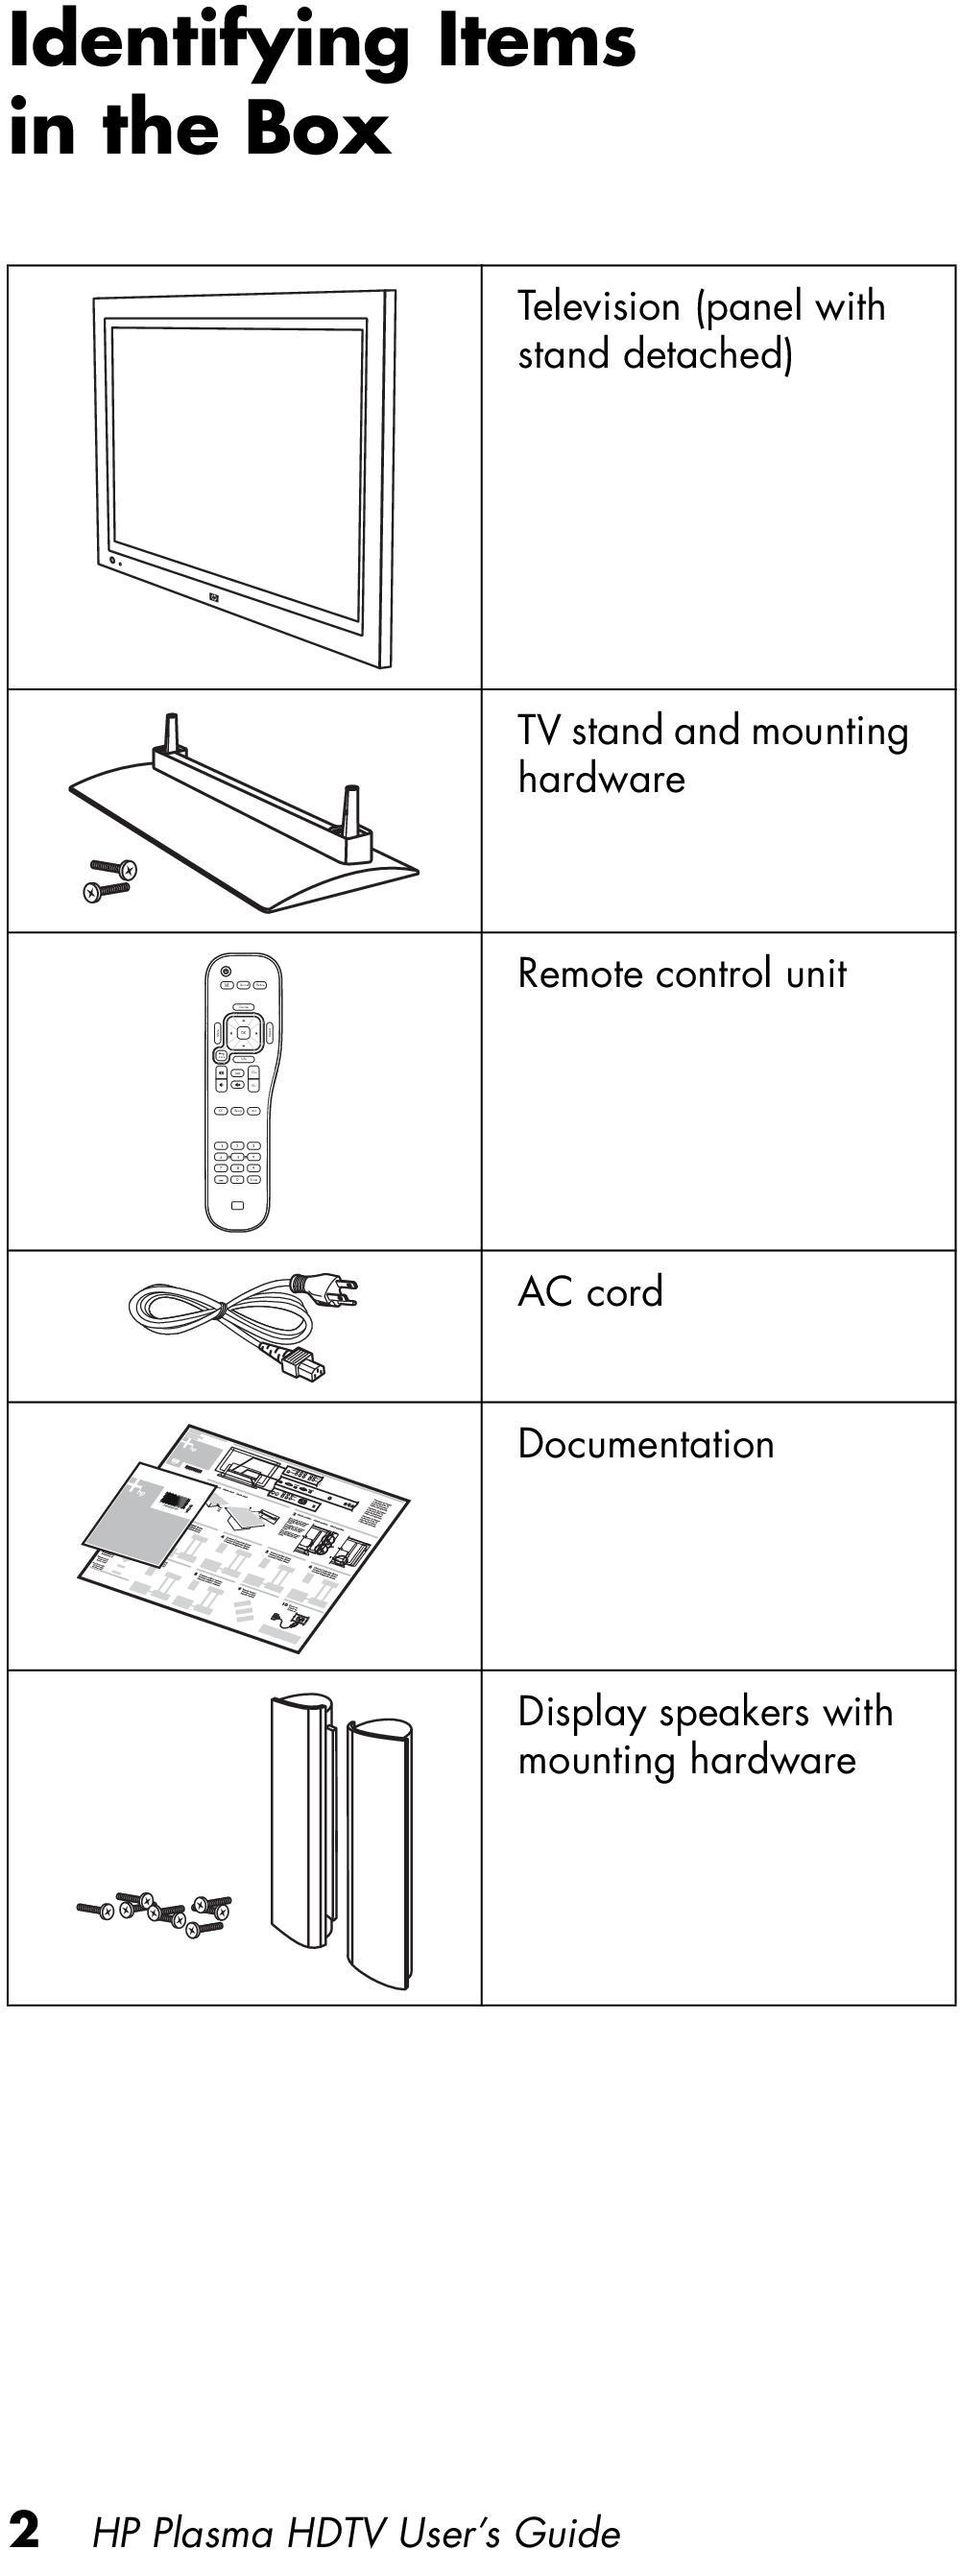 detached) TV stand and mounting hardware Remote control unit Aspect AC cord